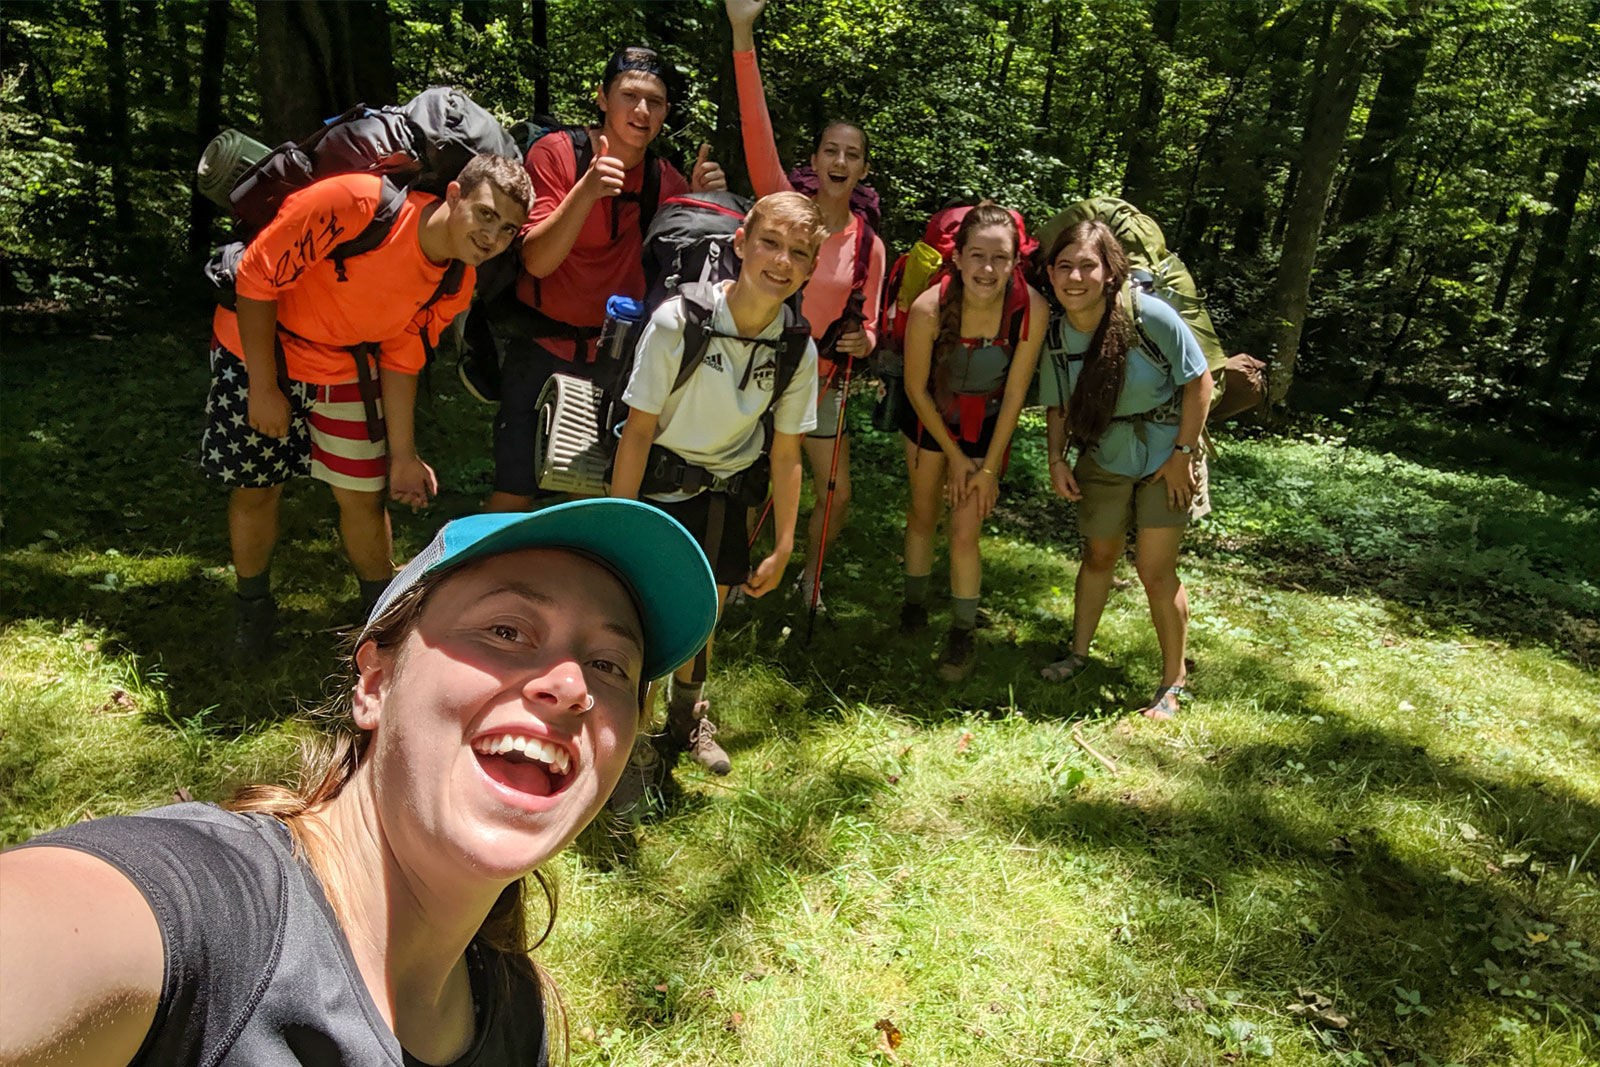 A group of campers wearing backpacks take a selfie